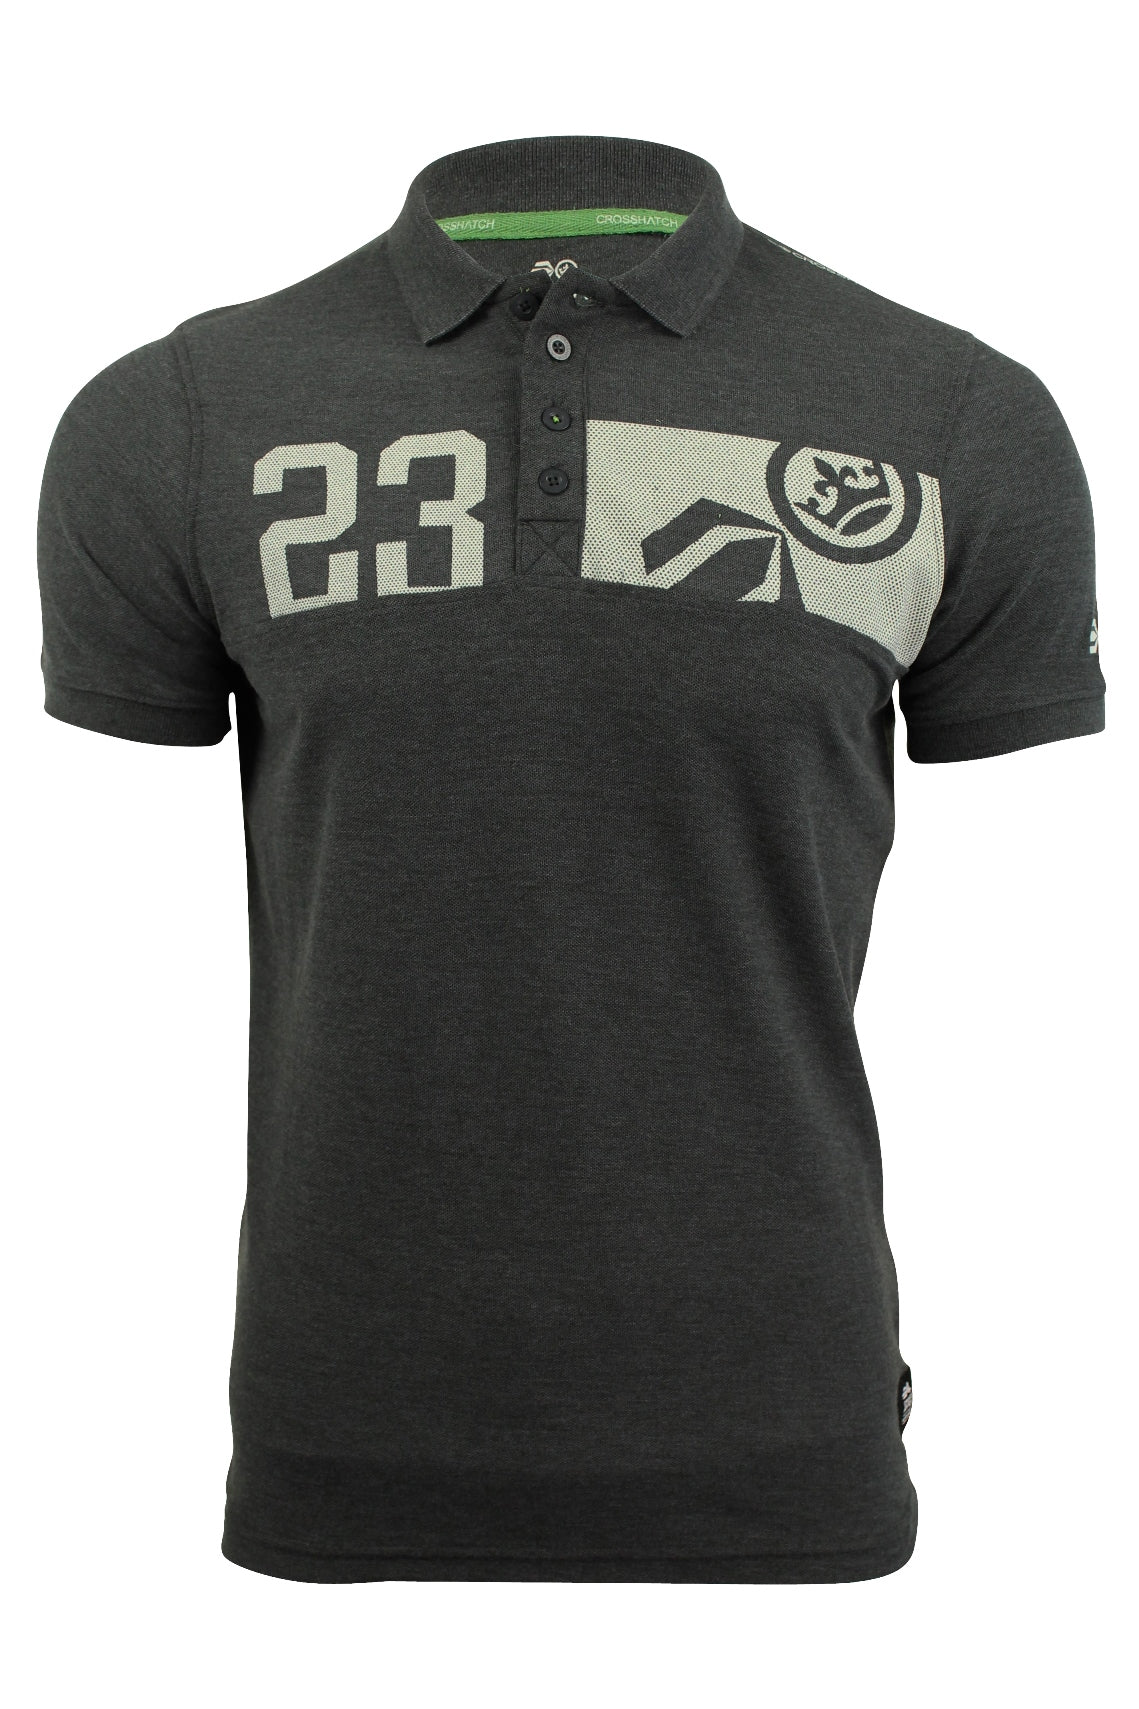 Mens Polo T-Shirt by Crosshatch 'Matrix'-Main Image